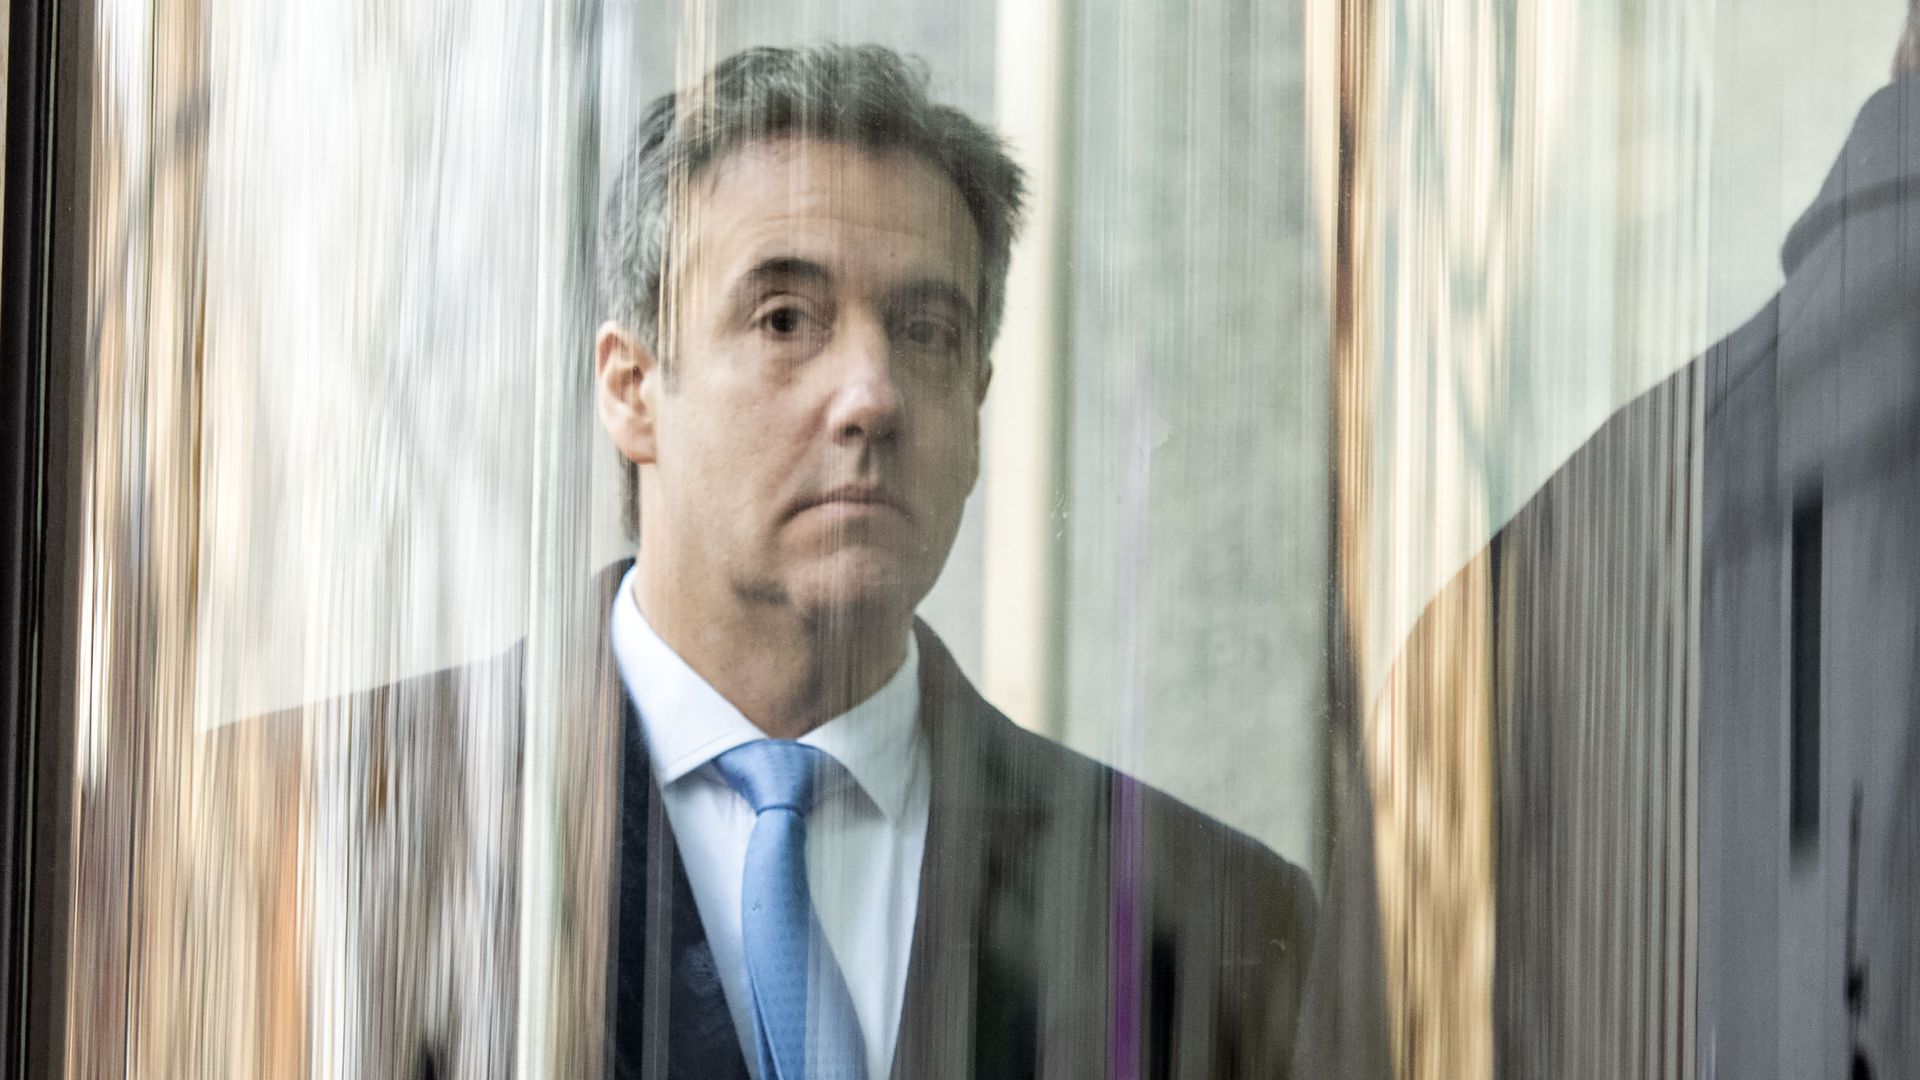 Michael Cohen behind glass